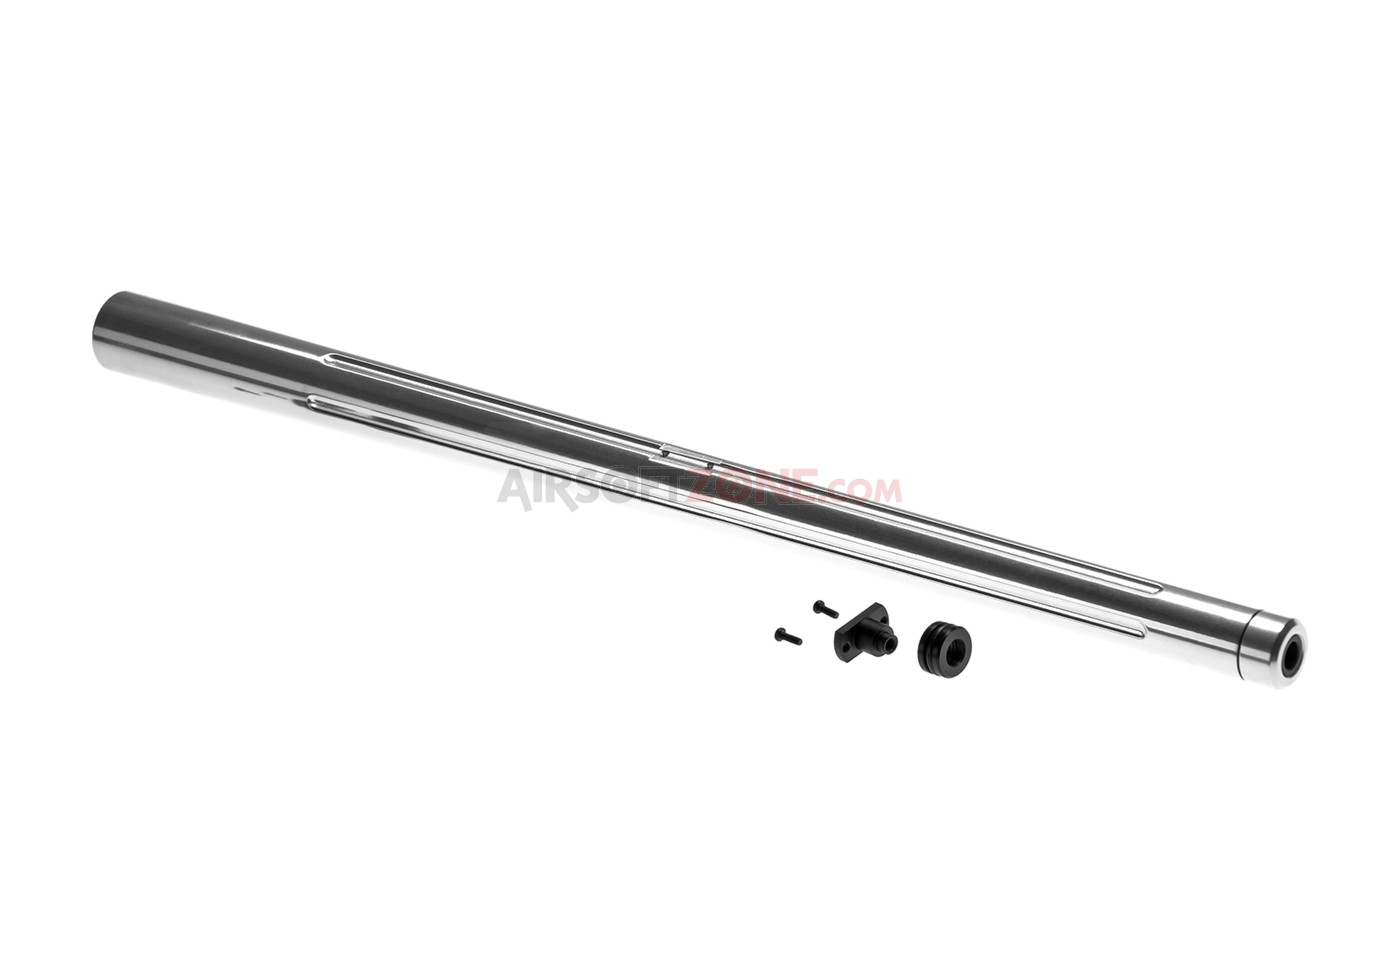 Custom Outer Barrel For Aac21 Kjw M700 Silver Action Army